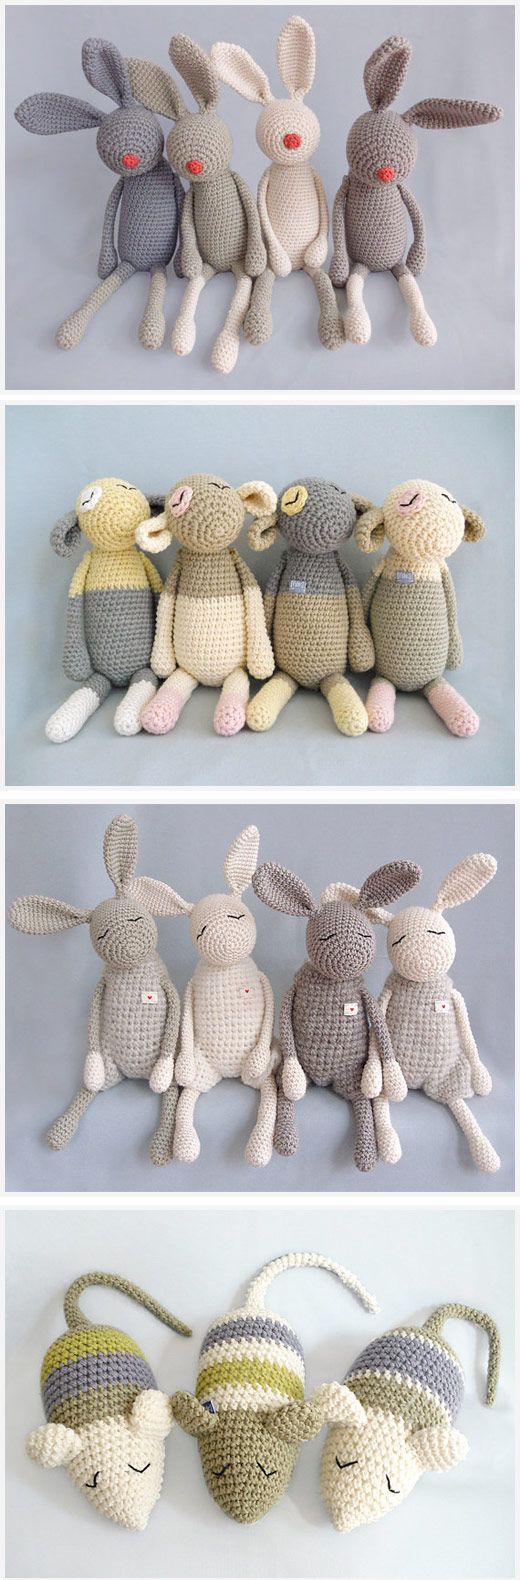 Cute Crocheted Creations by eineIdee - no pattern, just cuteness!